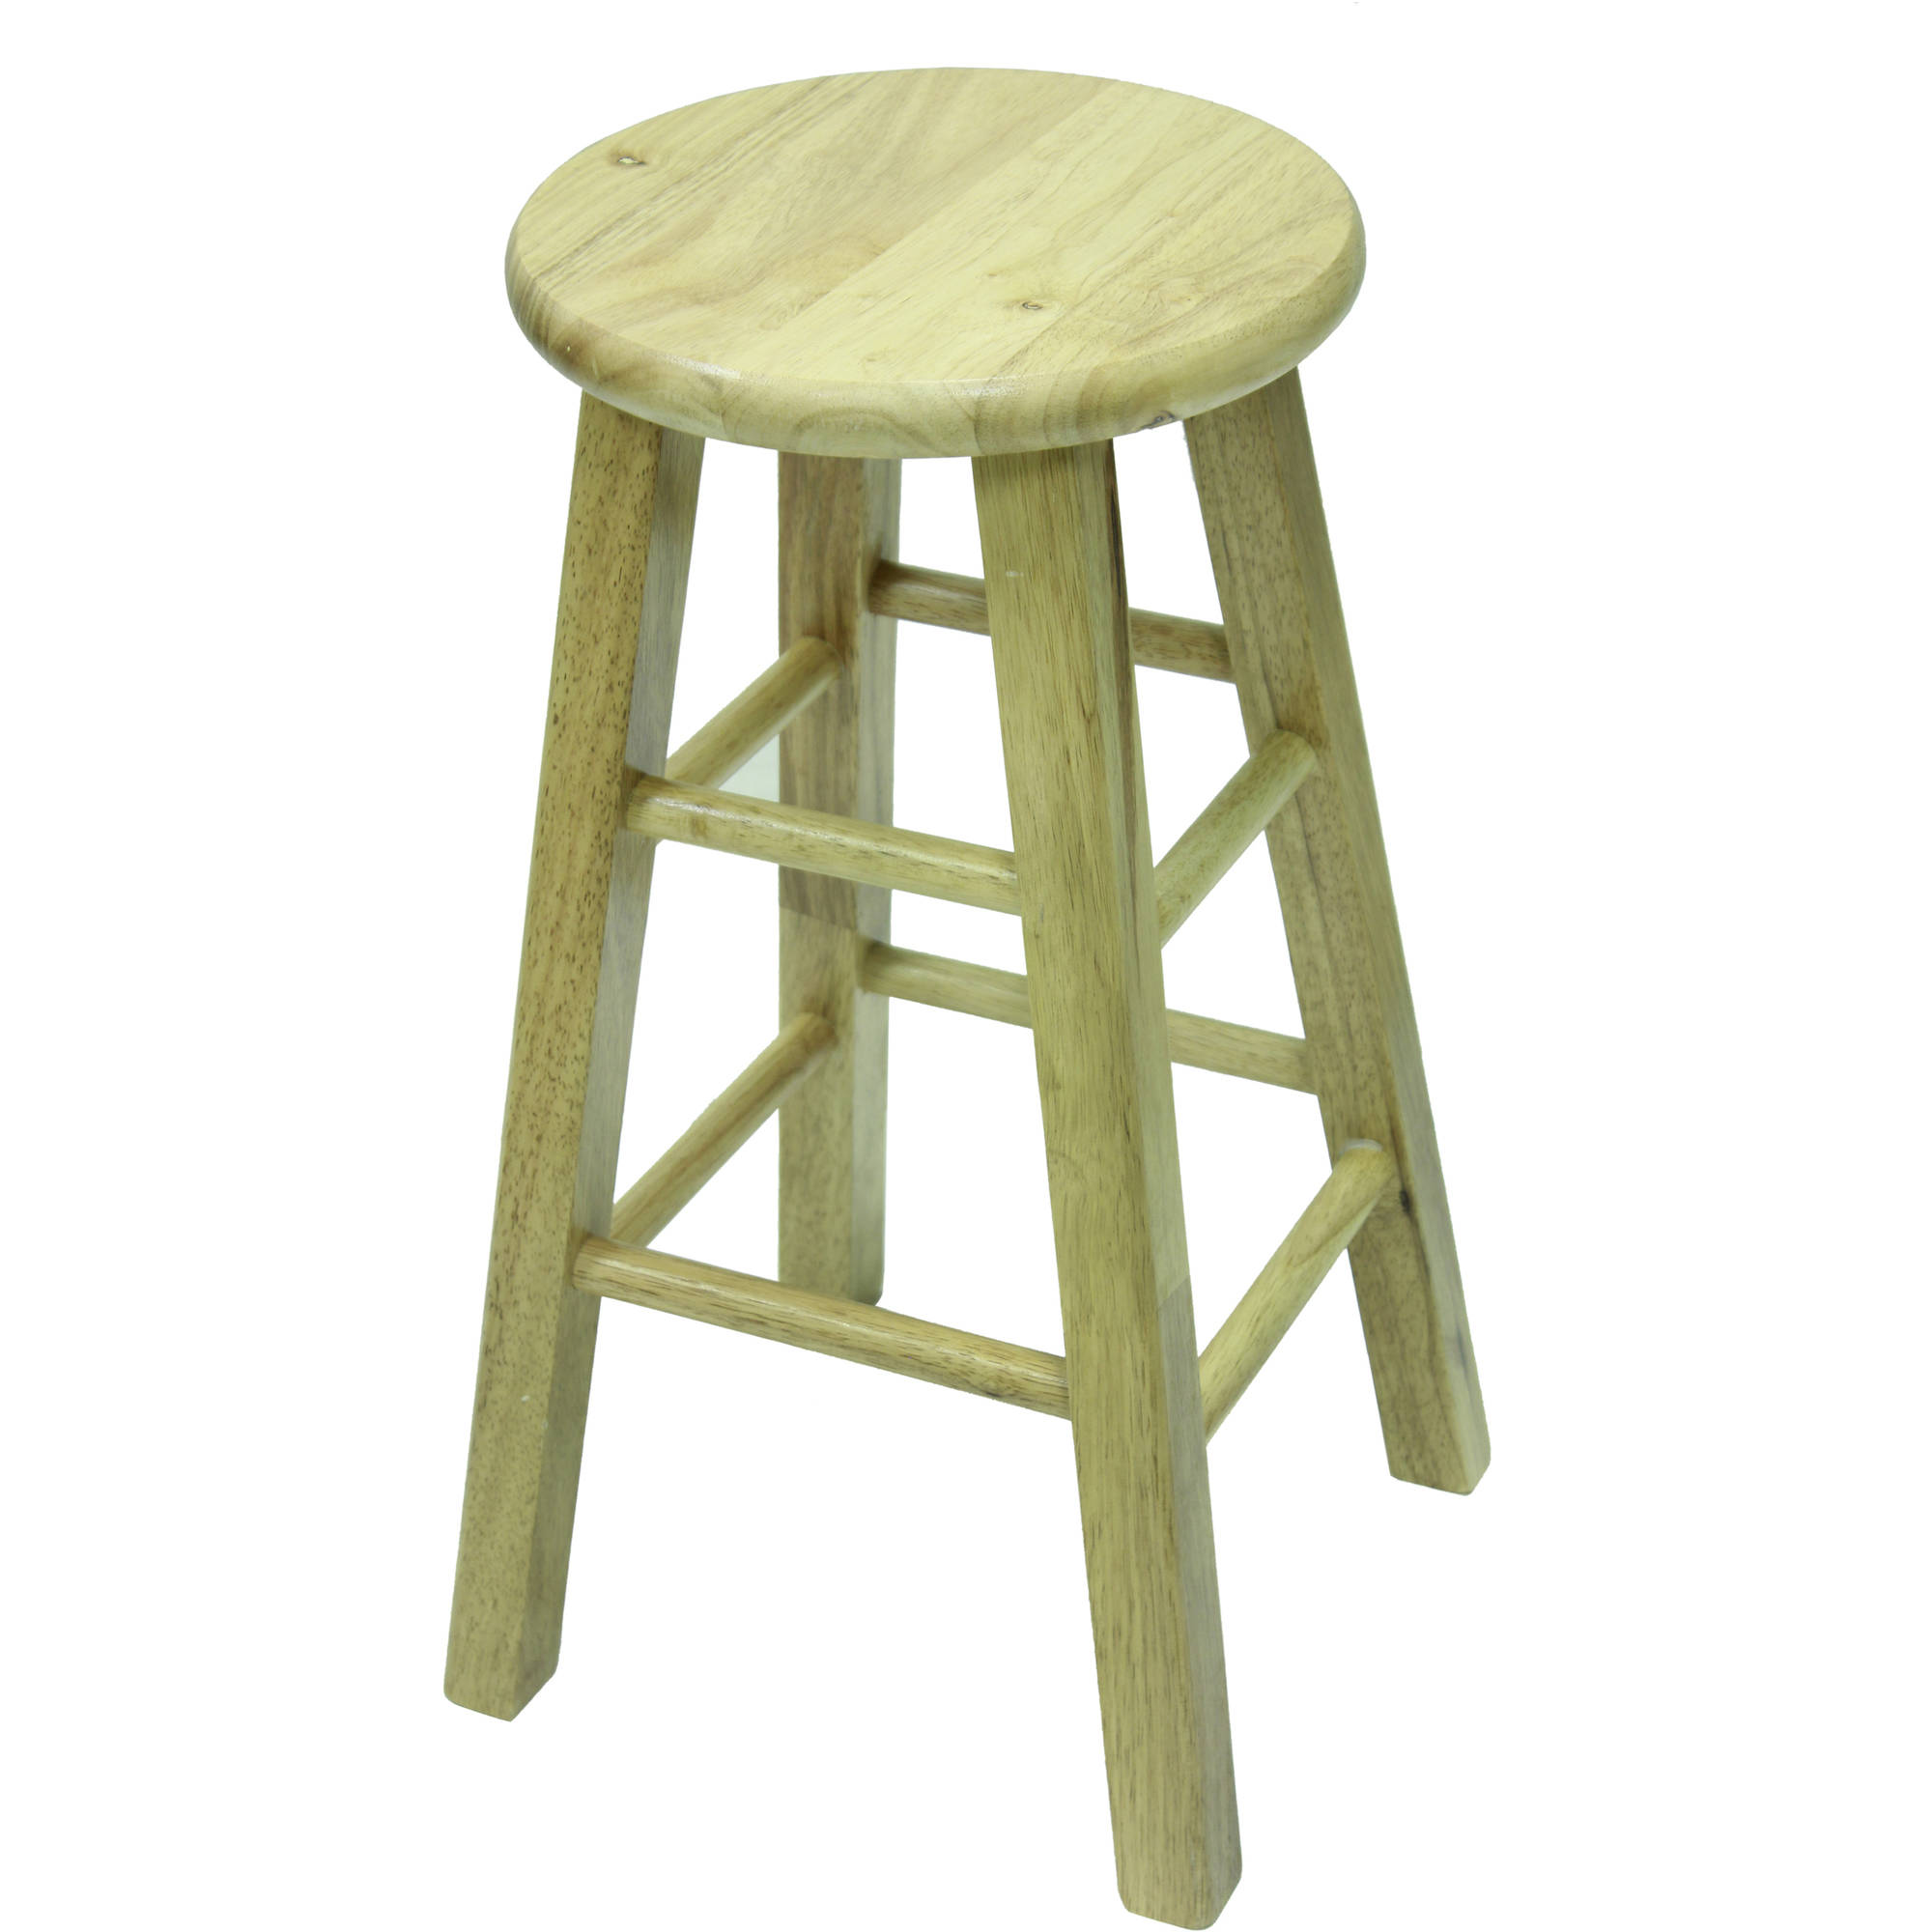 "Mainstays 24"" Fully Assembled Natural Wood Barstool"